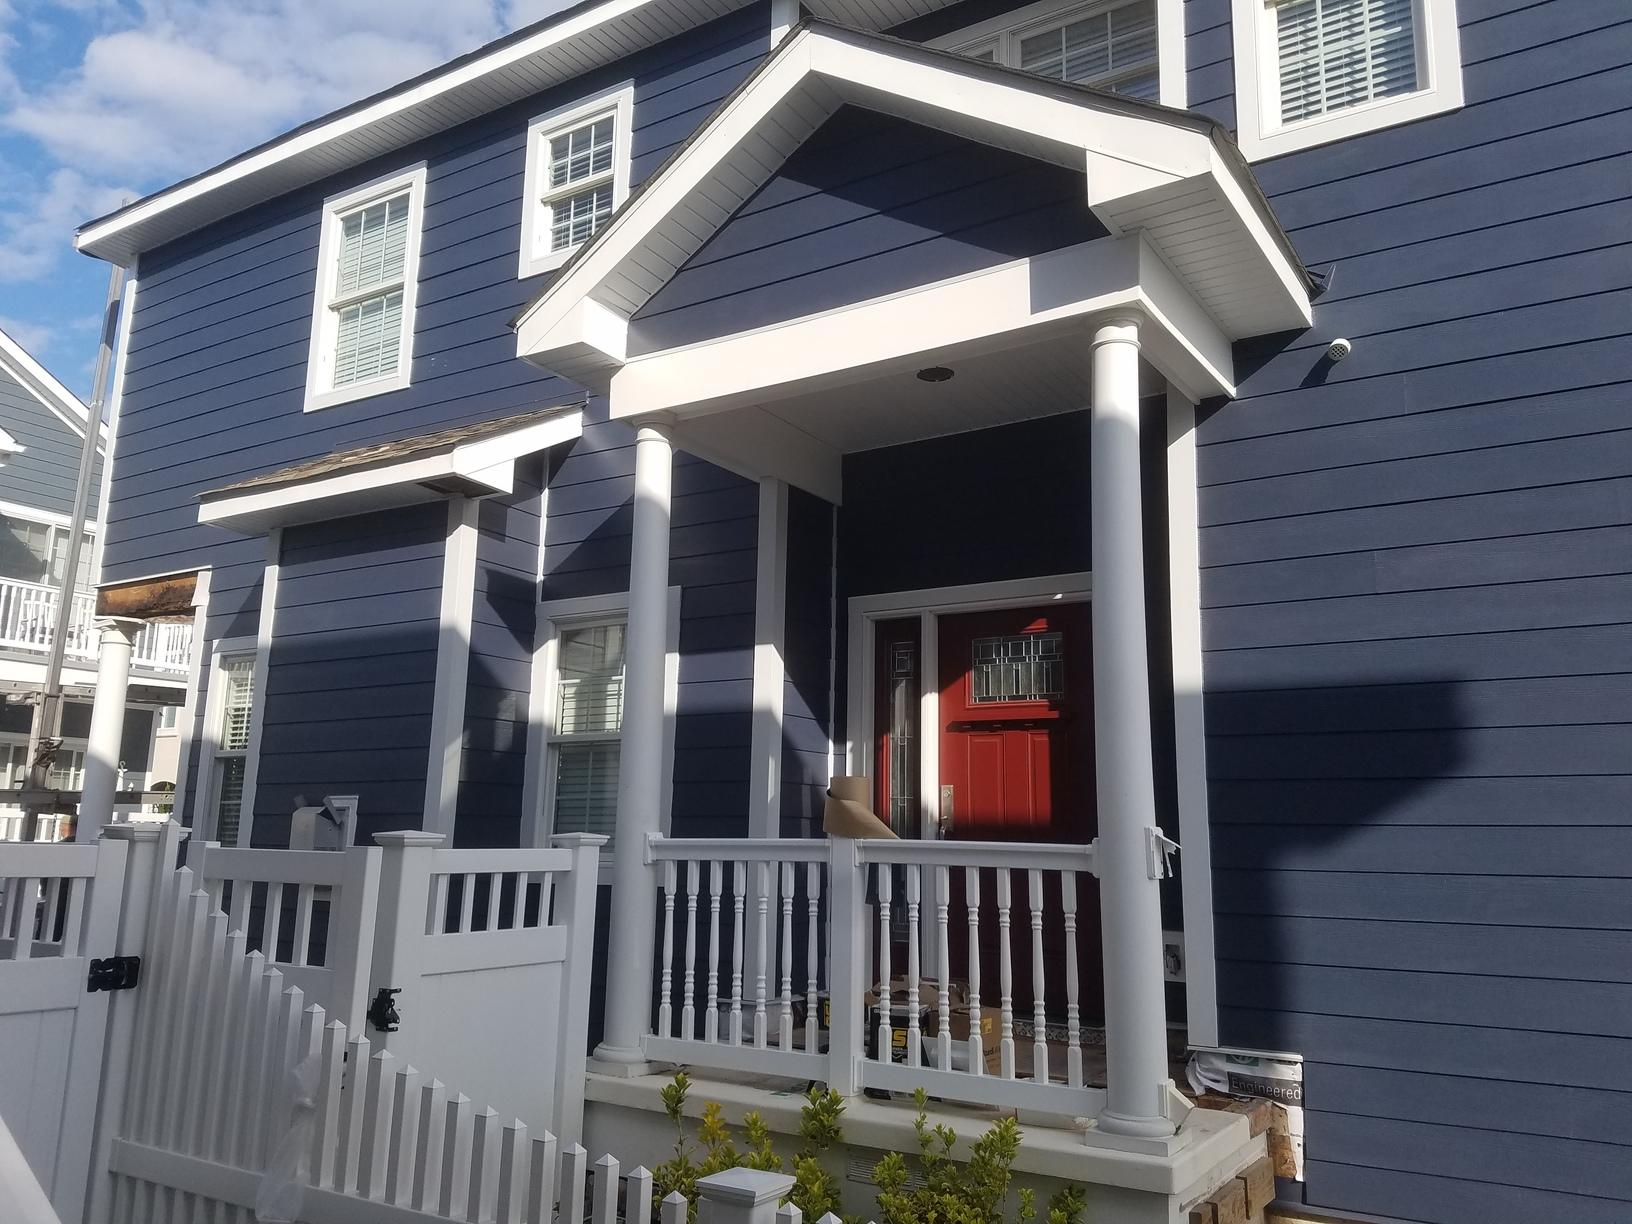 Evening Blue Hardie Siding with White Trim on Beach Home in Wildwood Crest, NJ